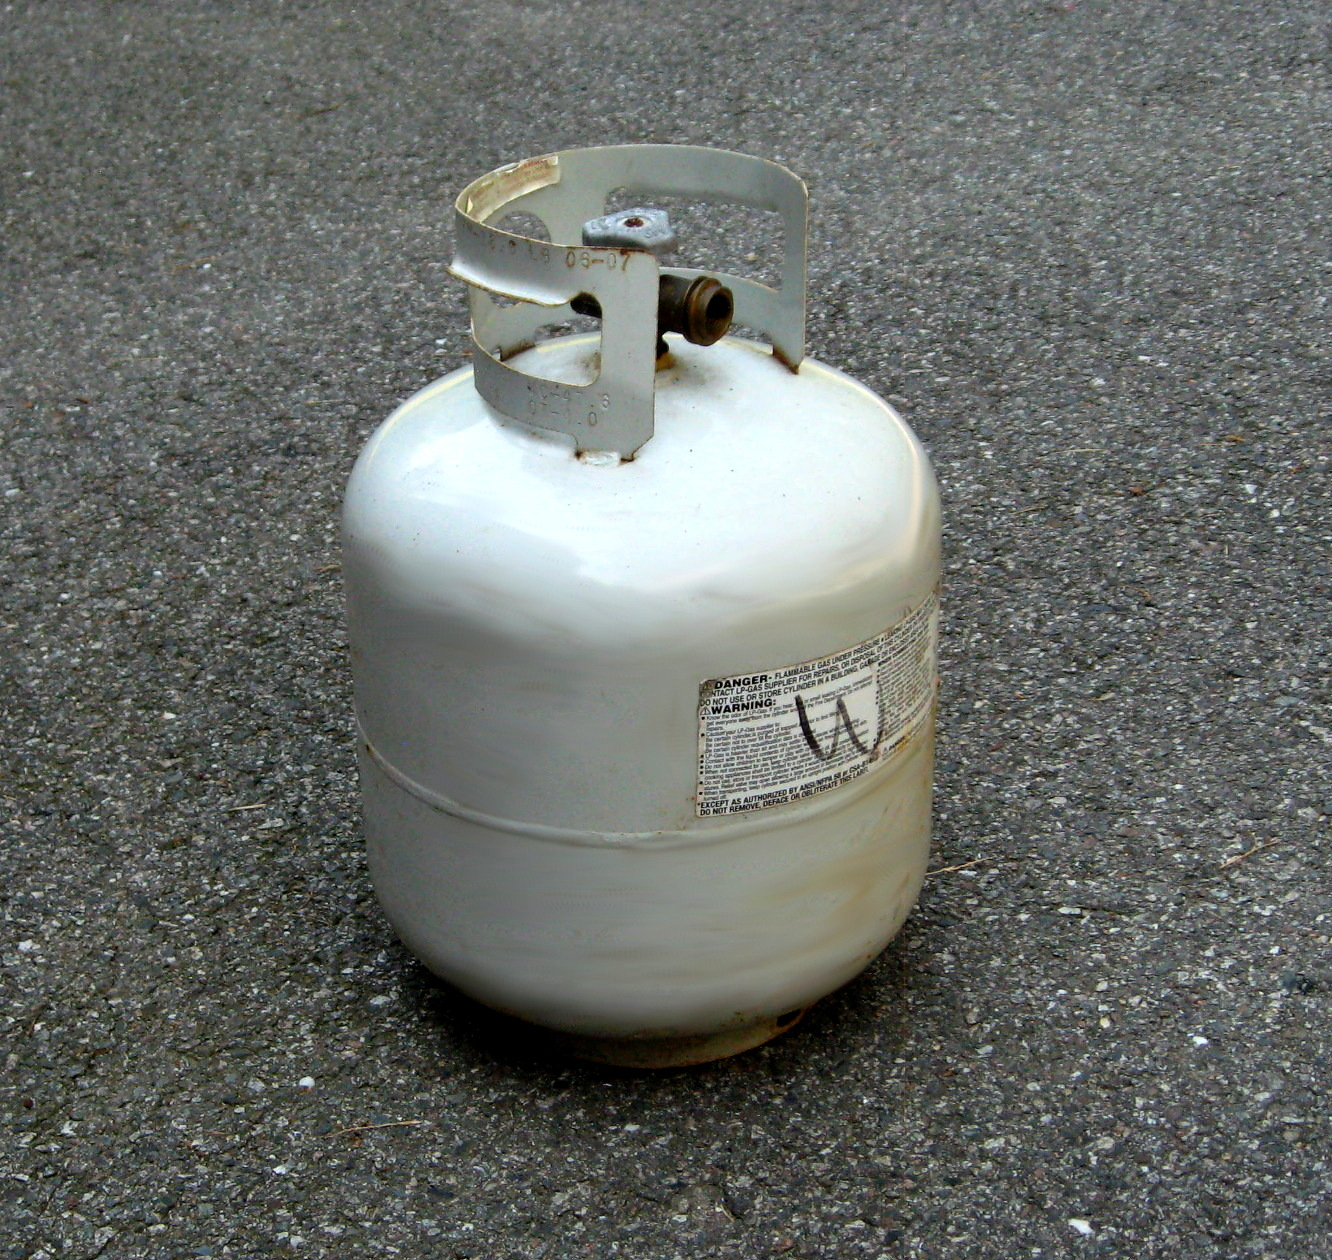 Why is propane stored in household tanks but natural gas is